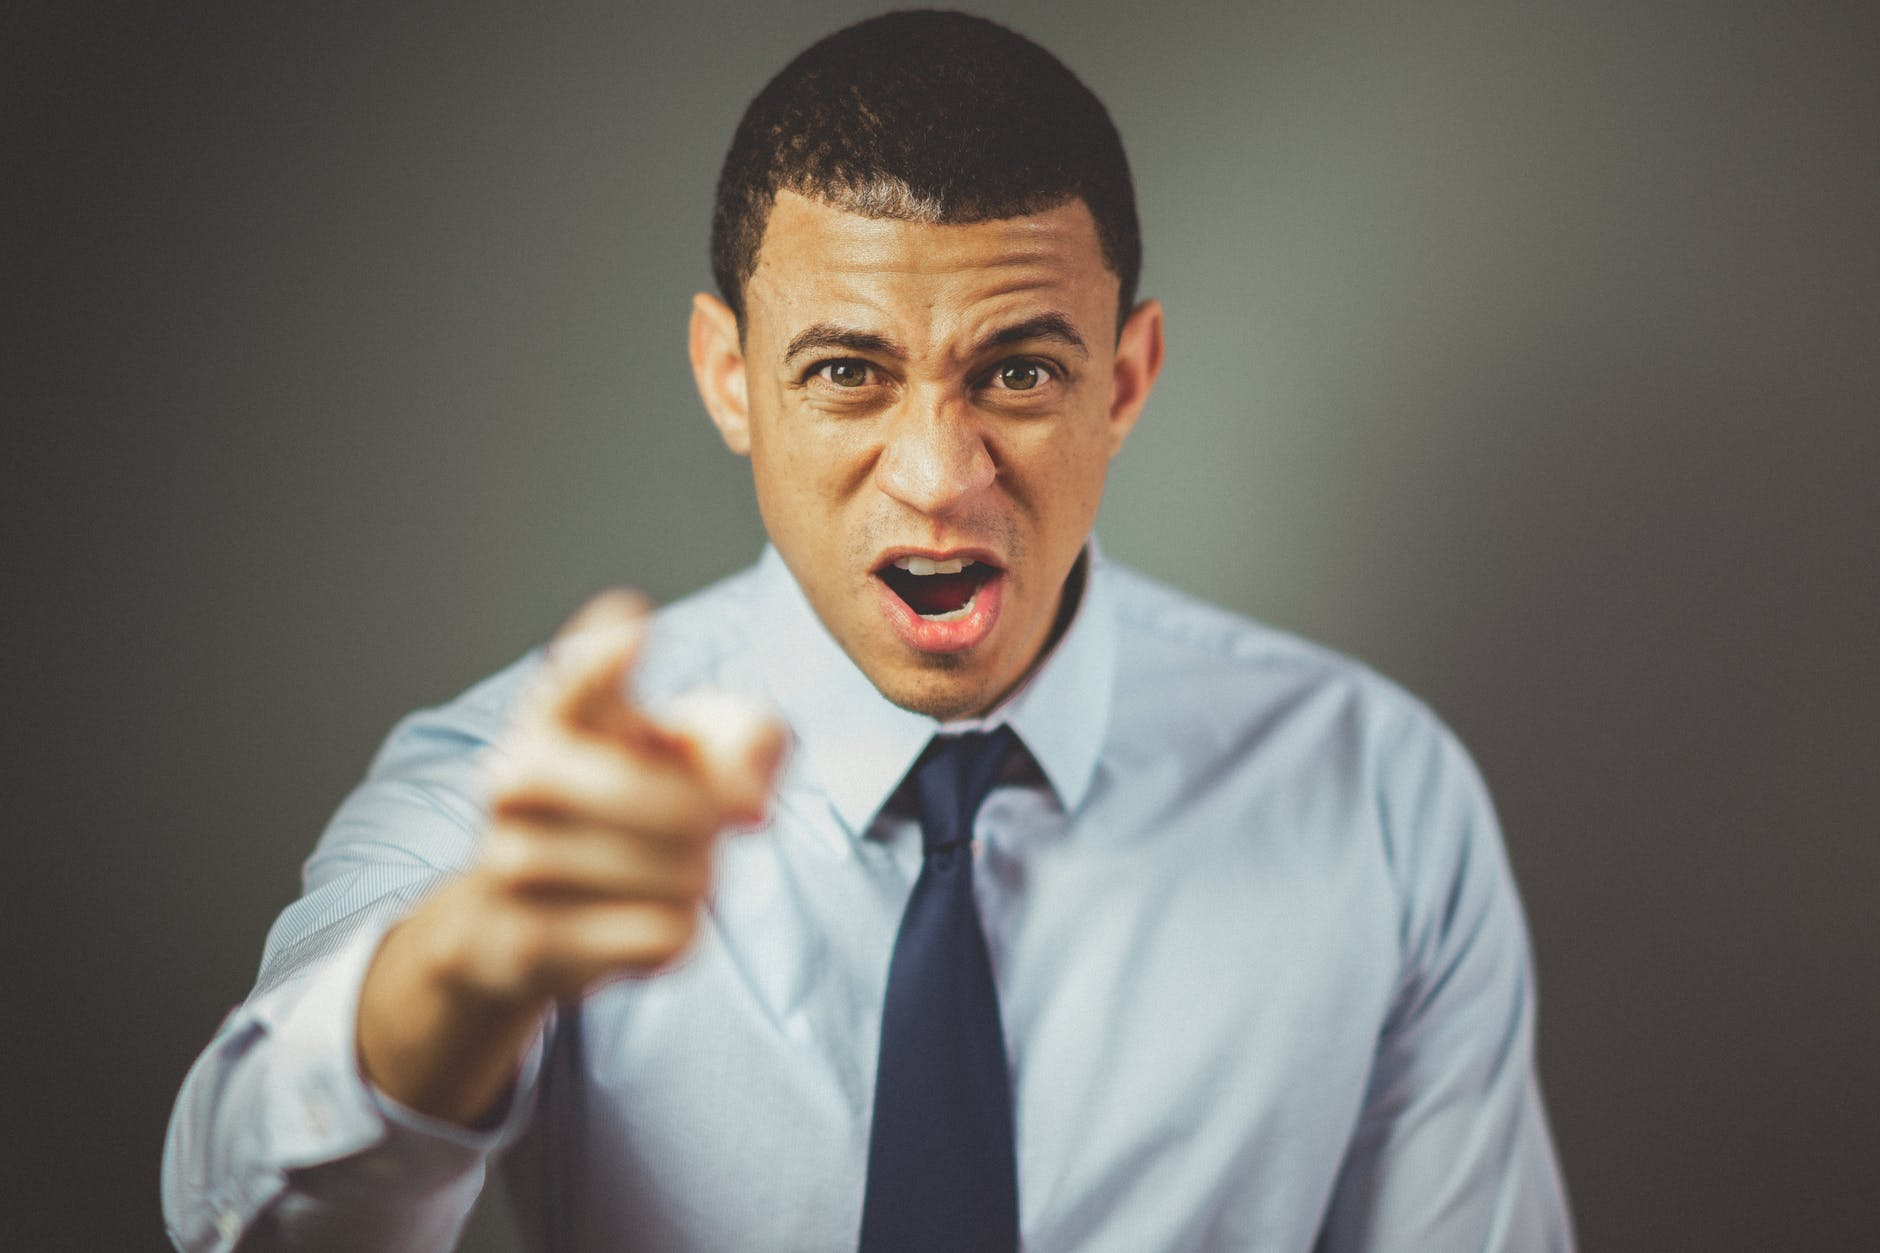 man in shirt and tie shouting and pointing at the camera